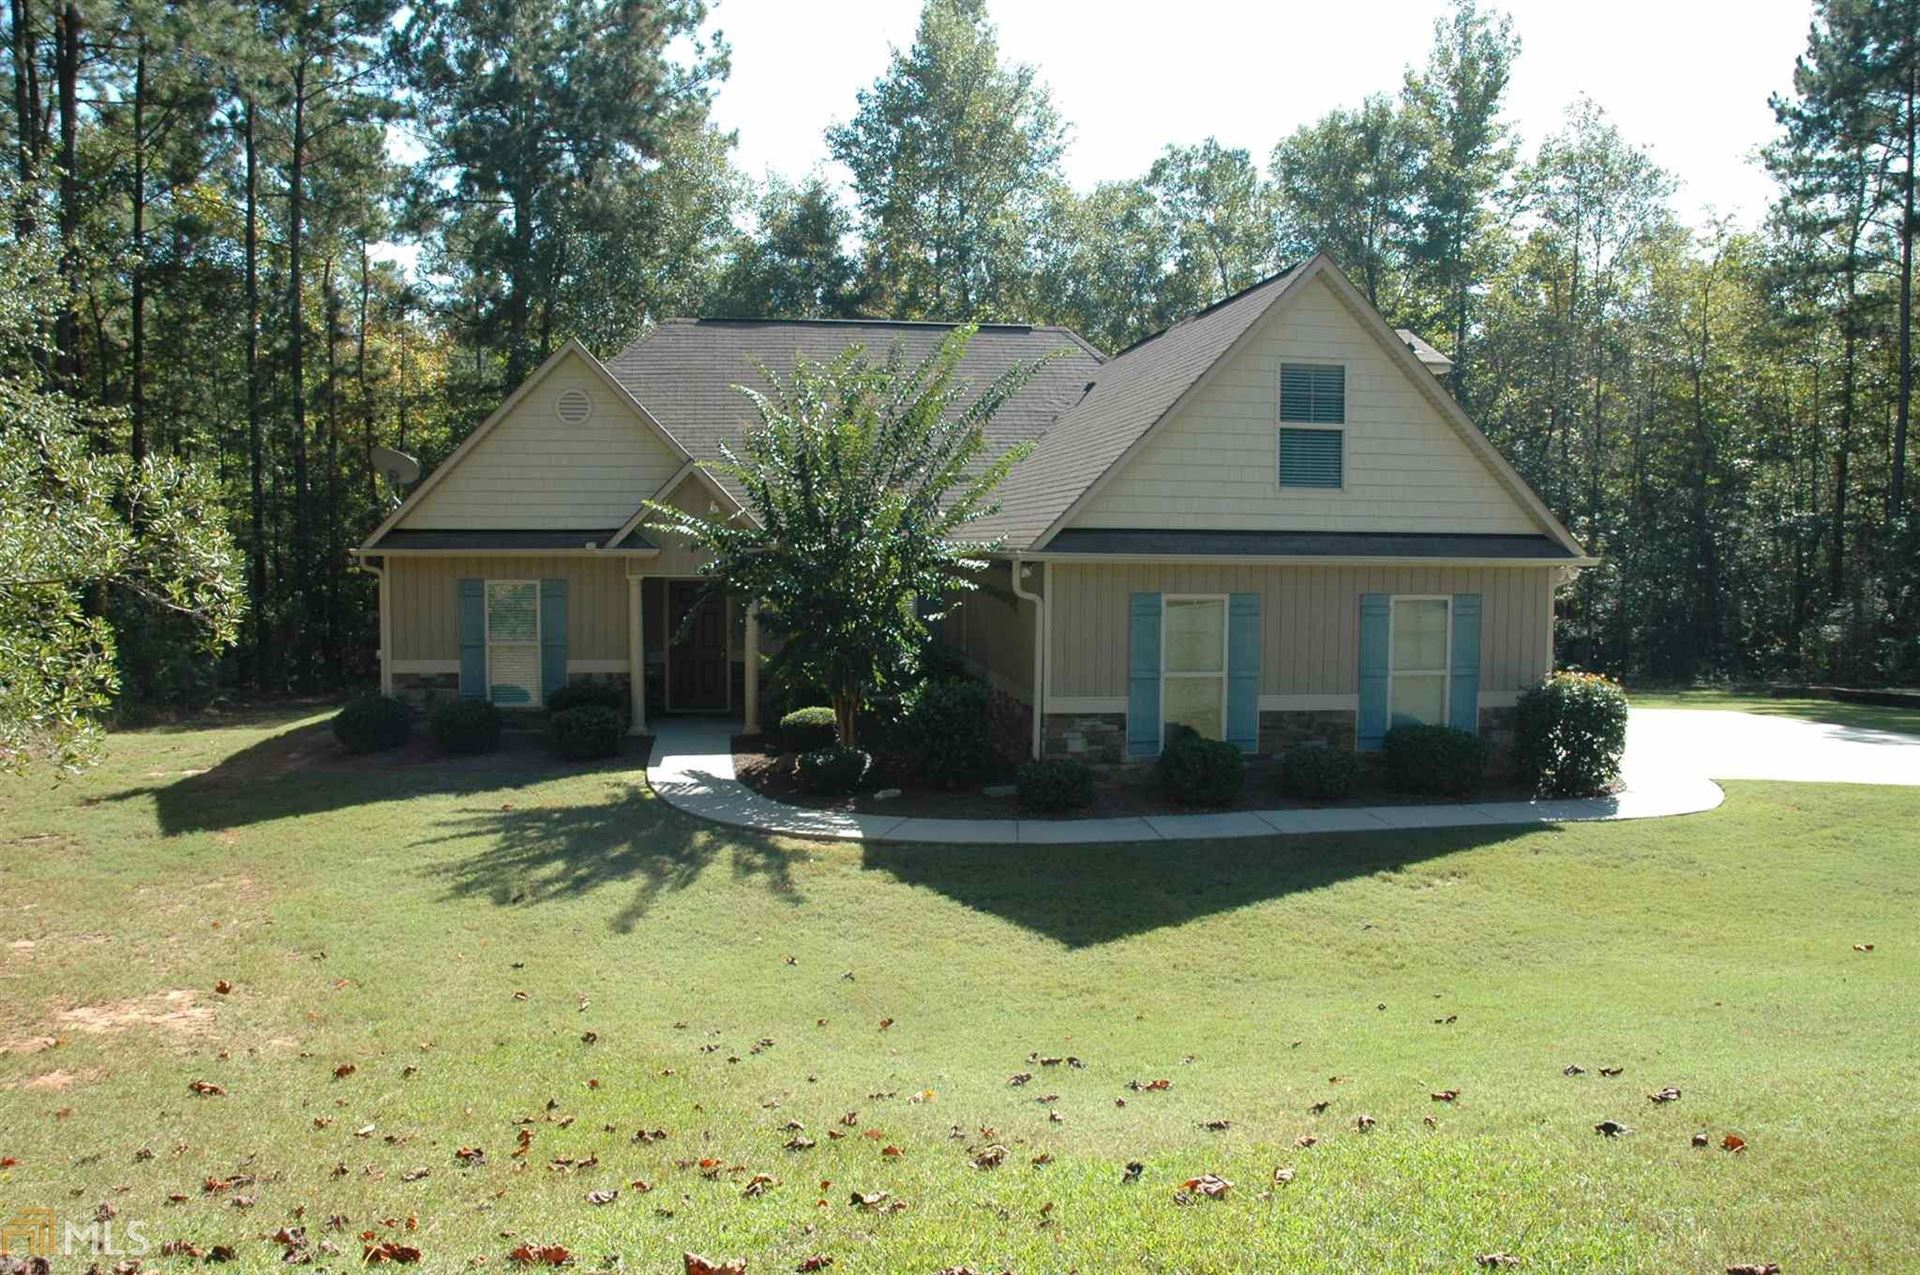 110 Holley Grv, LaGrange, GA 30240 - #: 8873476